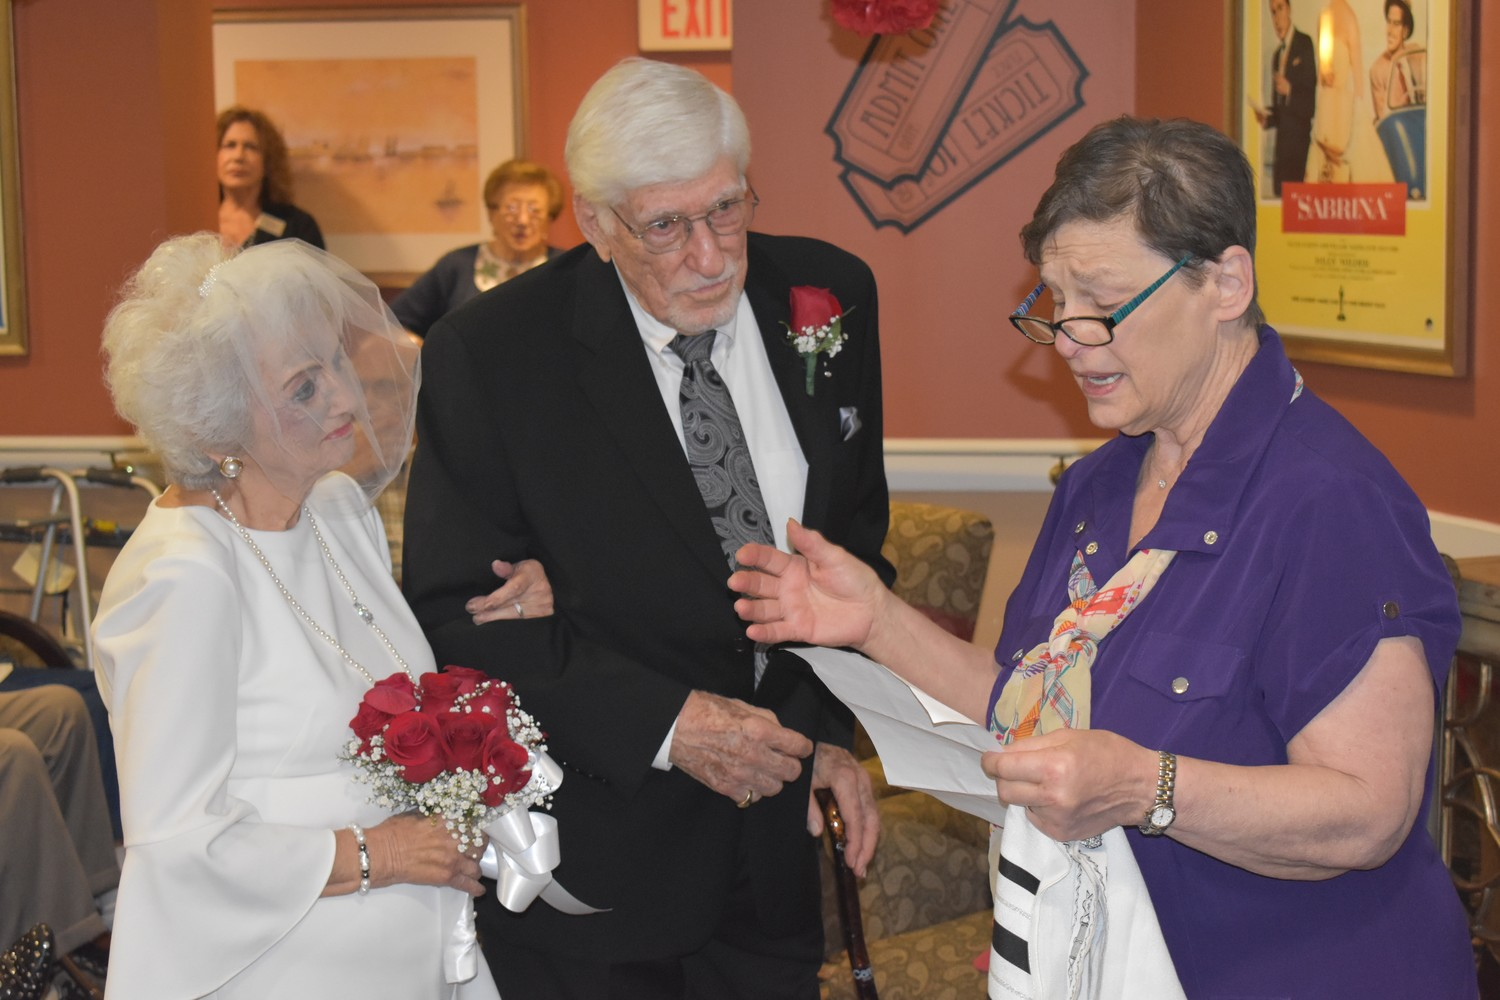 Barbara Prins, right, of Central Synagogue-Beth Emeth, led Arthur and Patricia Saftler in renewing their vows.